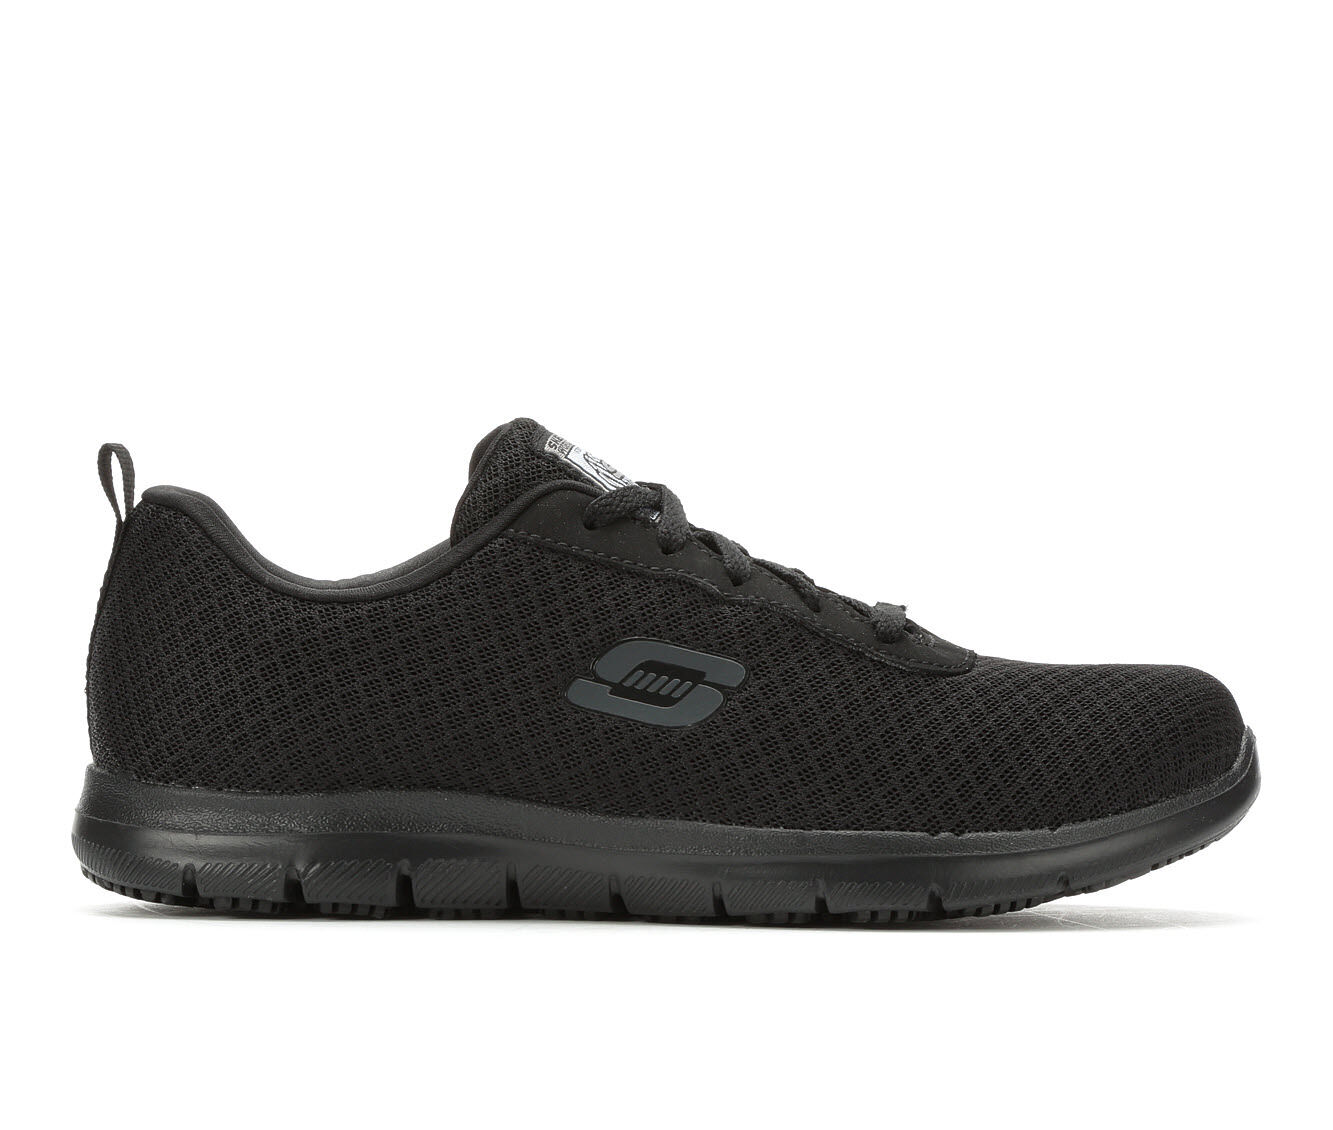 purchase latest Women's Skechers Work 77210 Bronaugh Slip Resistant Safety Shoes Black